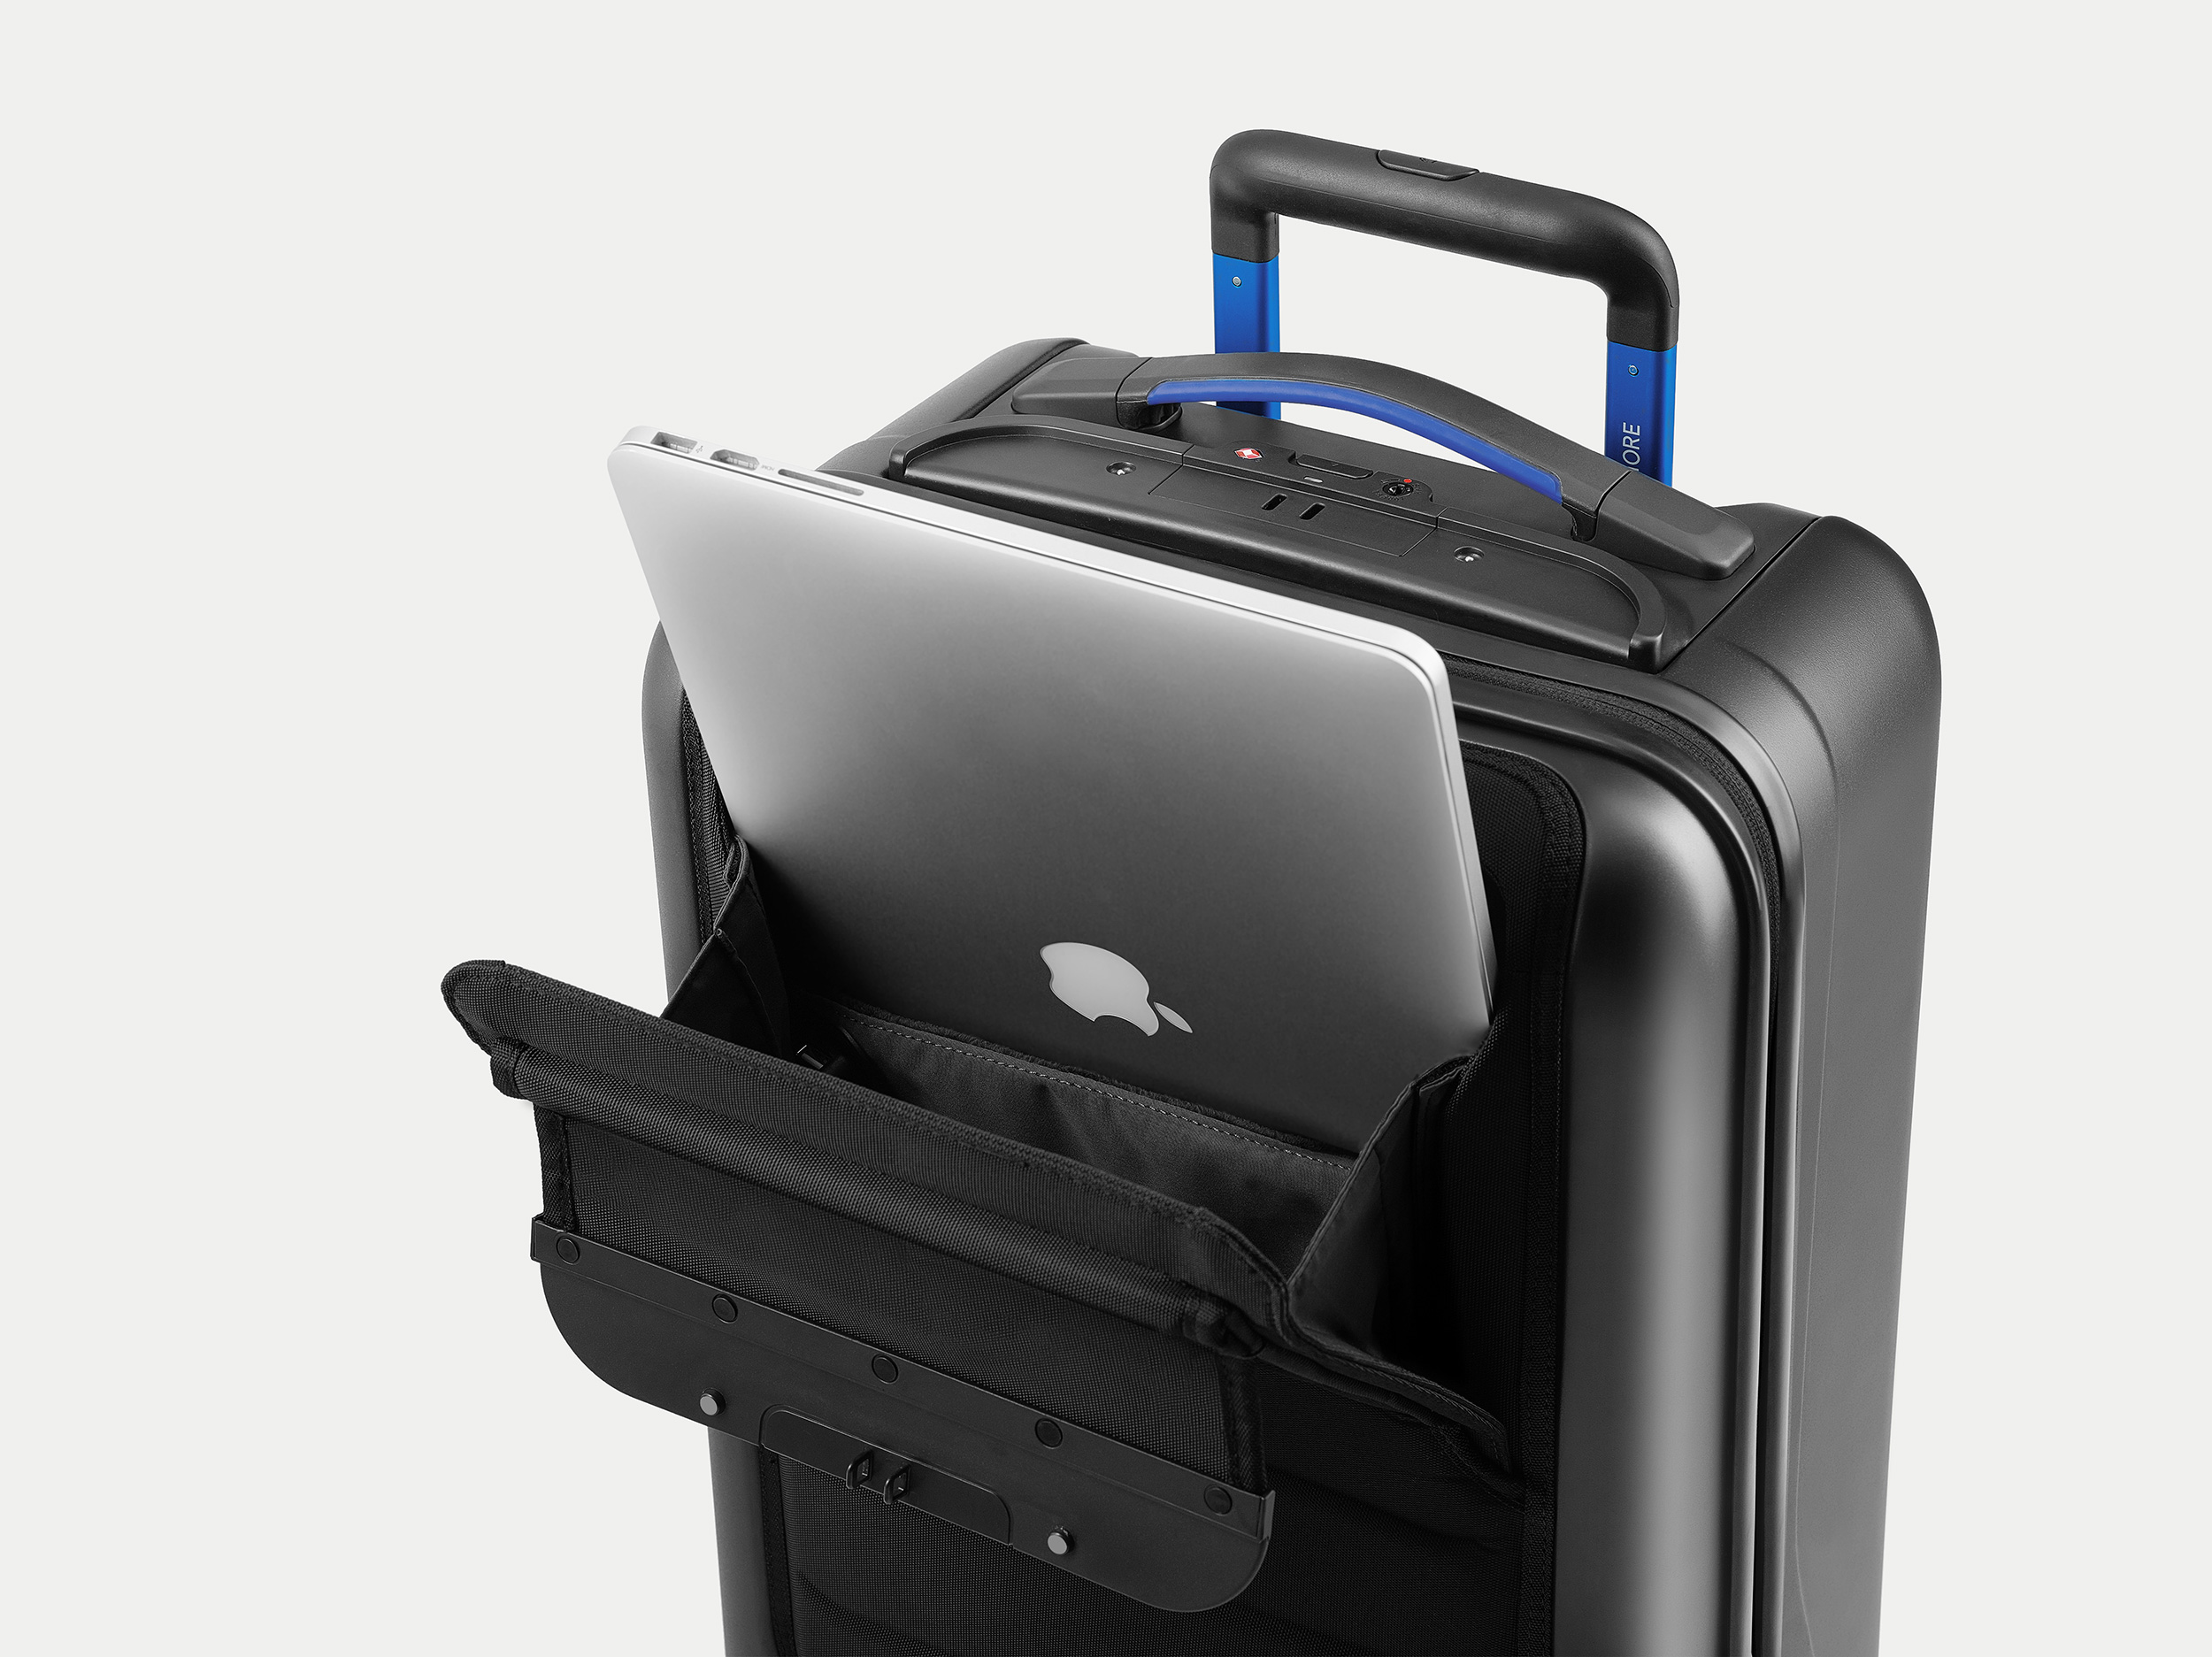 Photos and features of the Away suitcase with phone charger forecasting